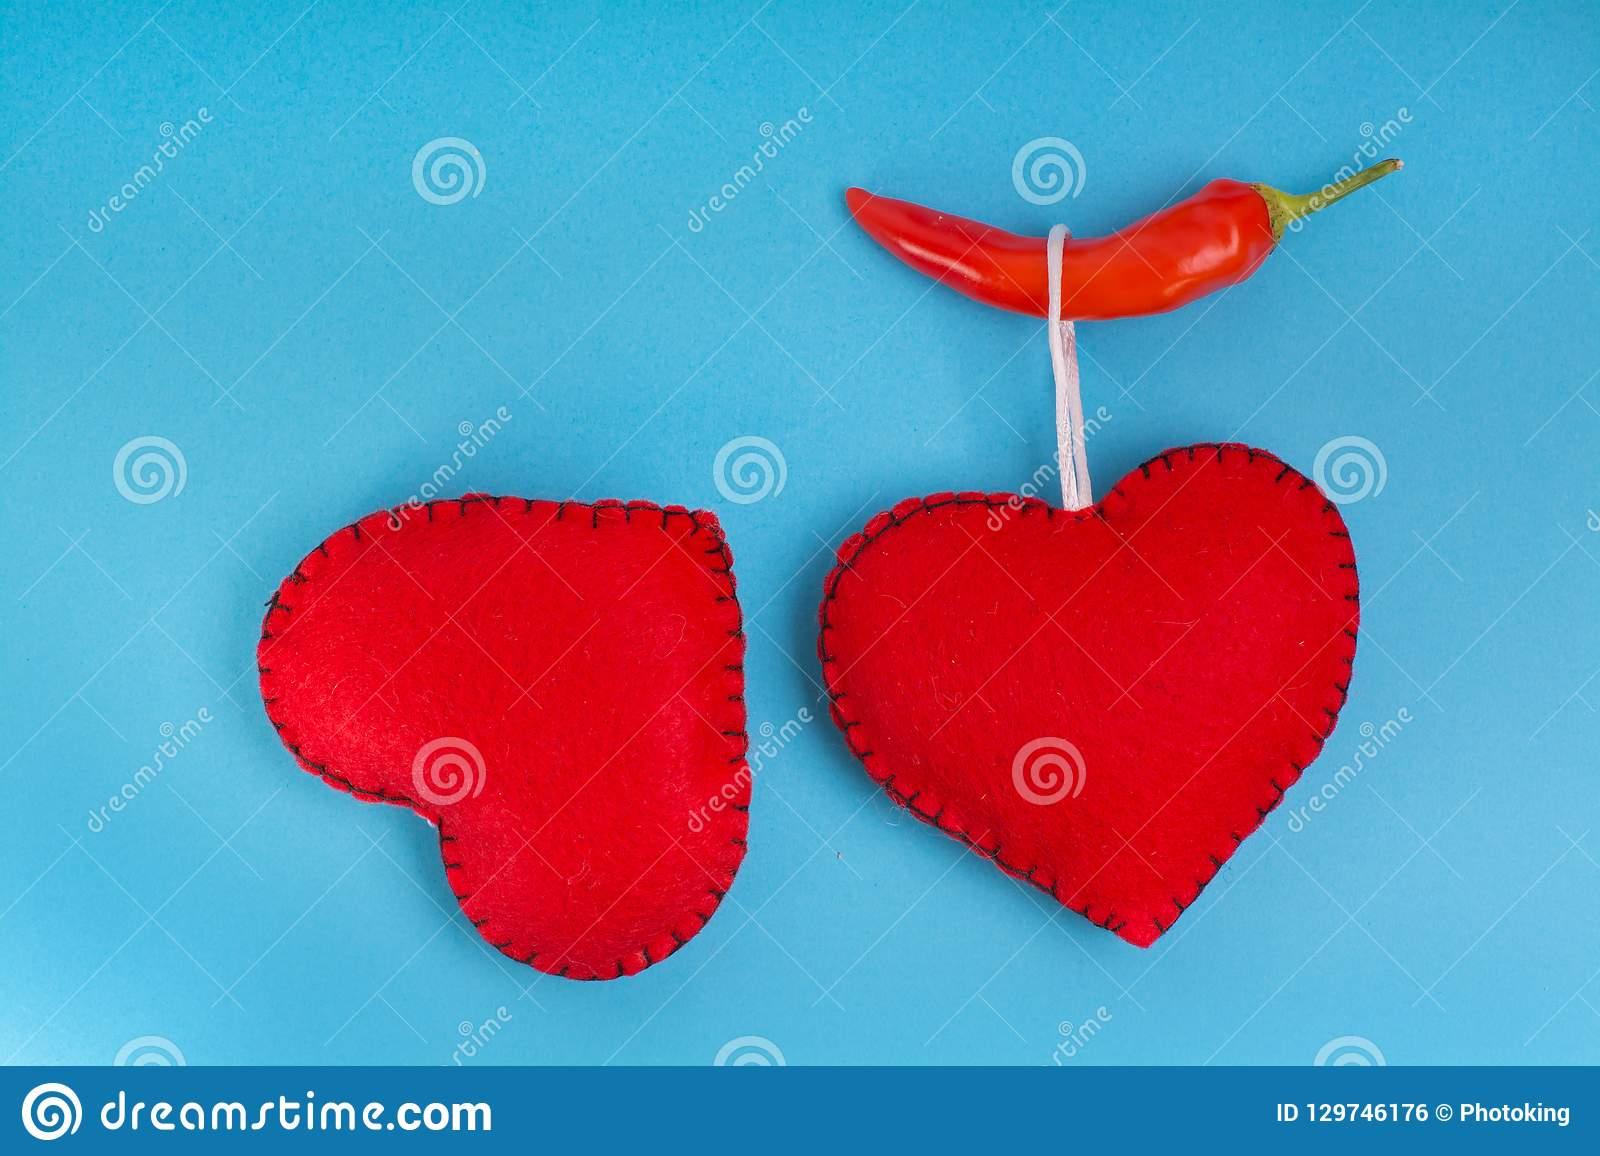 Heart sign with red pepper